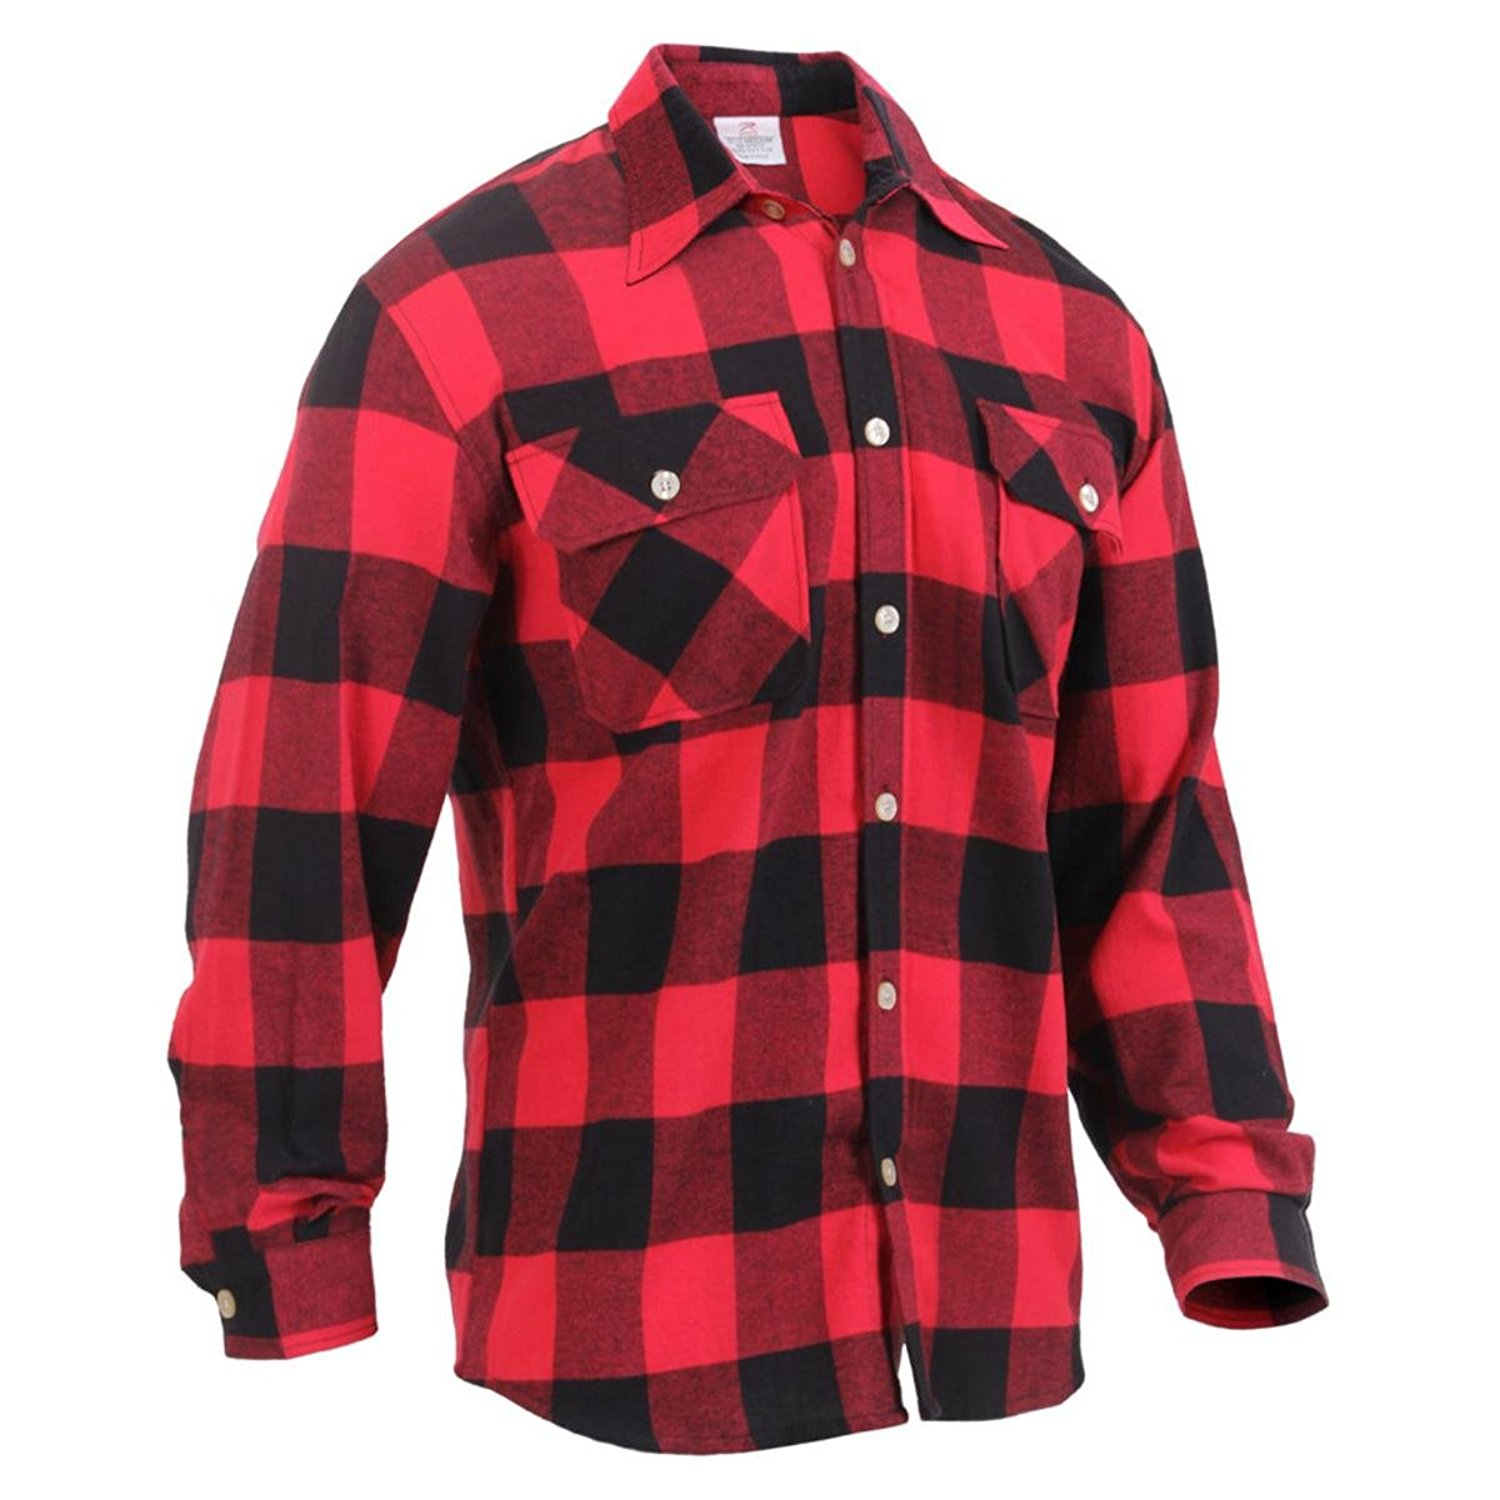 Rothco Lightweight Flannel Shirt - Red Plaid, X-Large